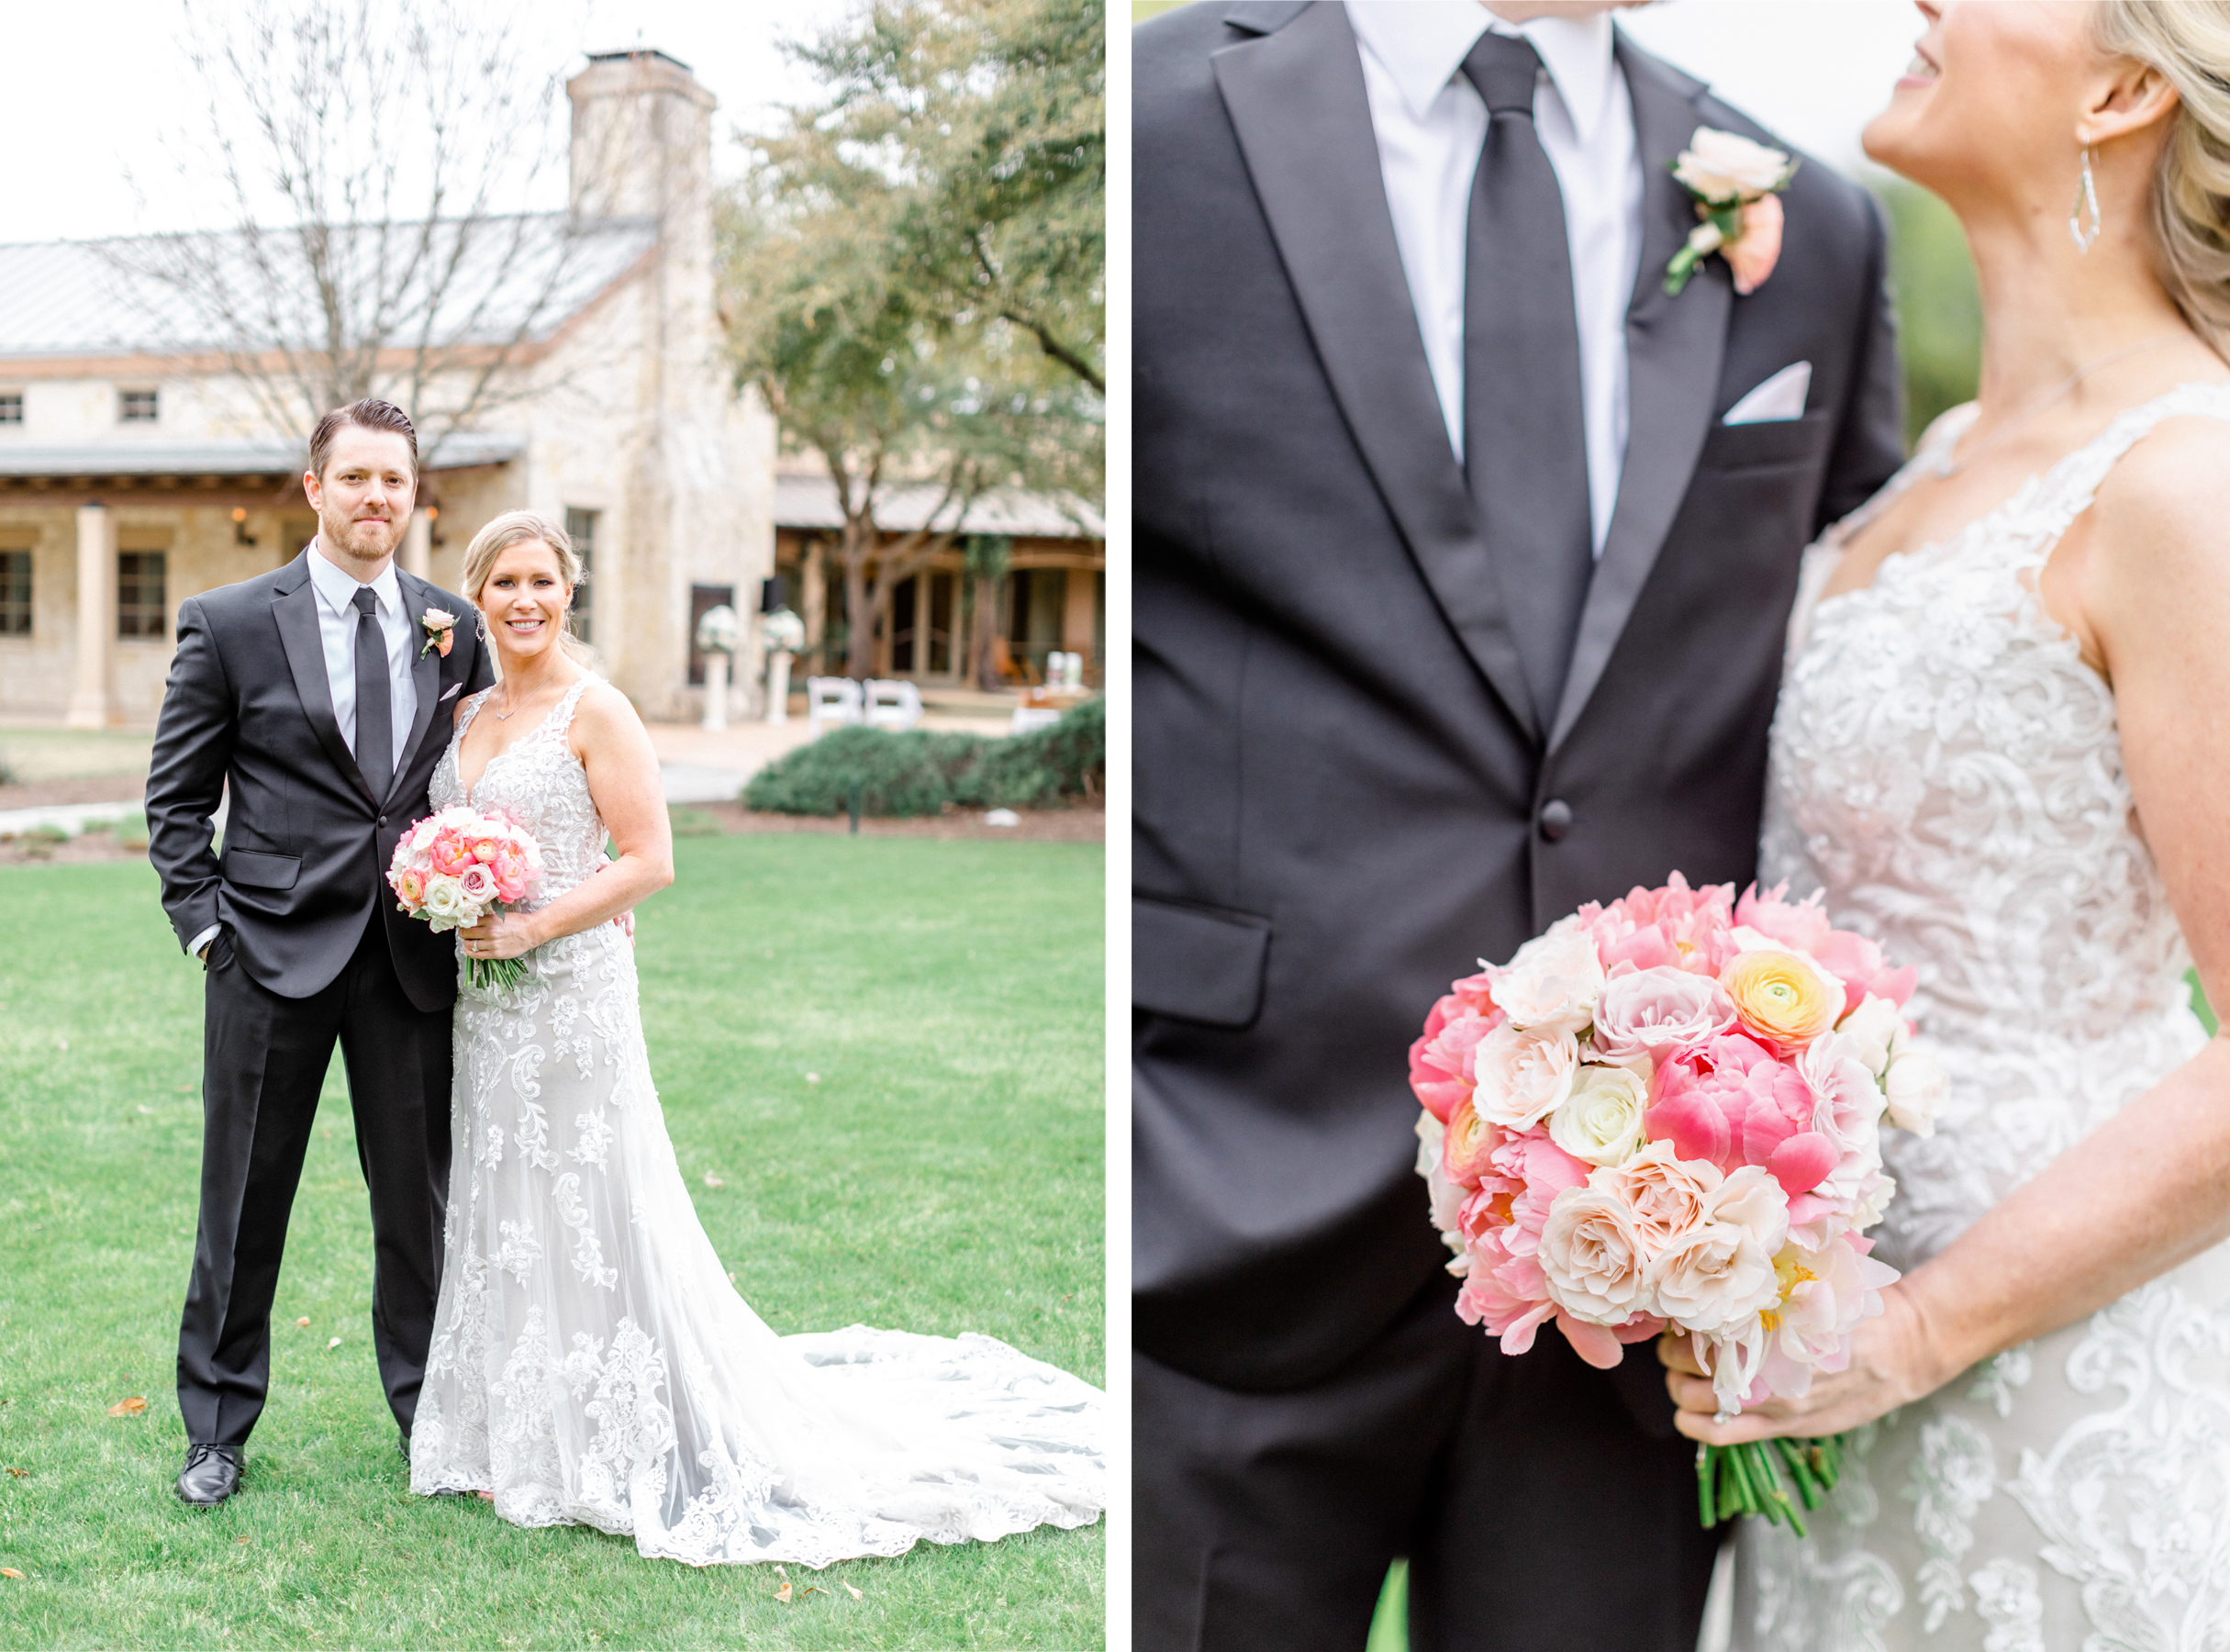 San Antonio Austin Boerne New Braunfels Texas Wedding Engagement Photographer Photography Hill Country Texas JW Marriott Sunday House Wedding Spring Wedding Coral Pink Intimate Wedding San Antonio Austin Texas photographer 39